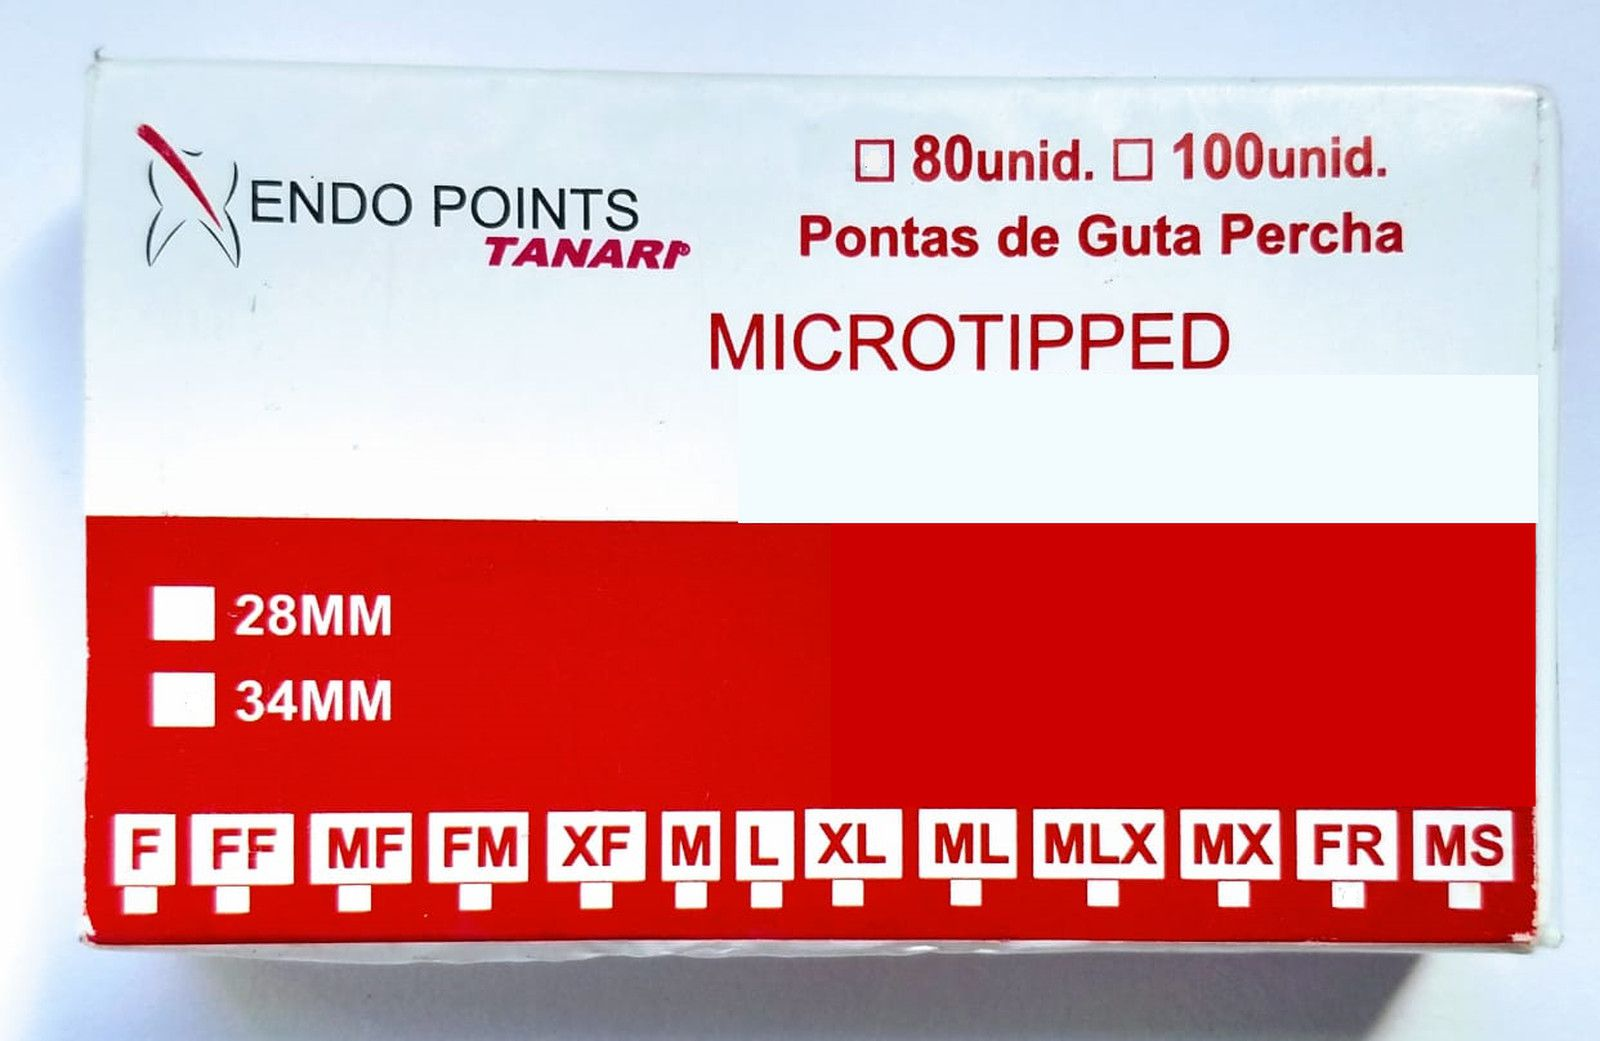 CONE DE GUTA  Microtipped - ENDO POINTS